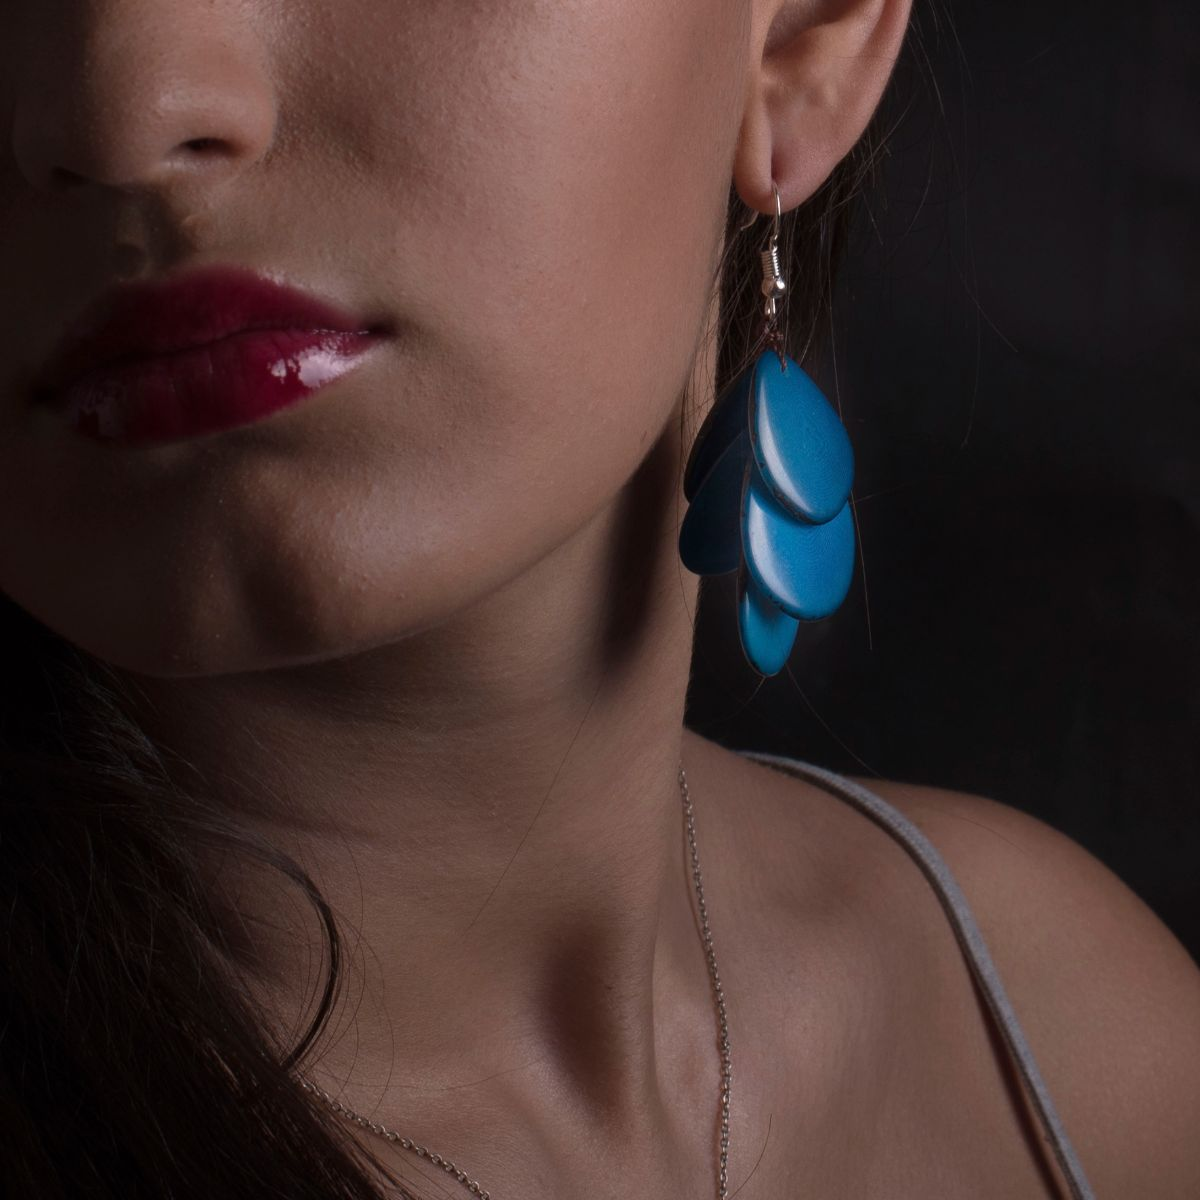 Long earring petals with five blue tagua seed blades